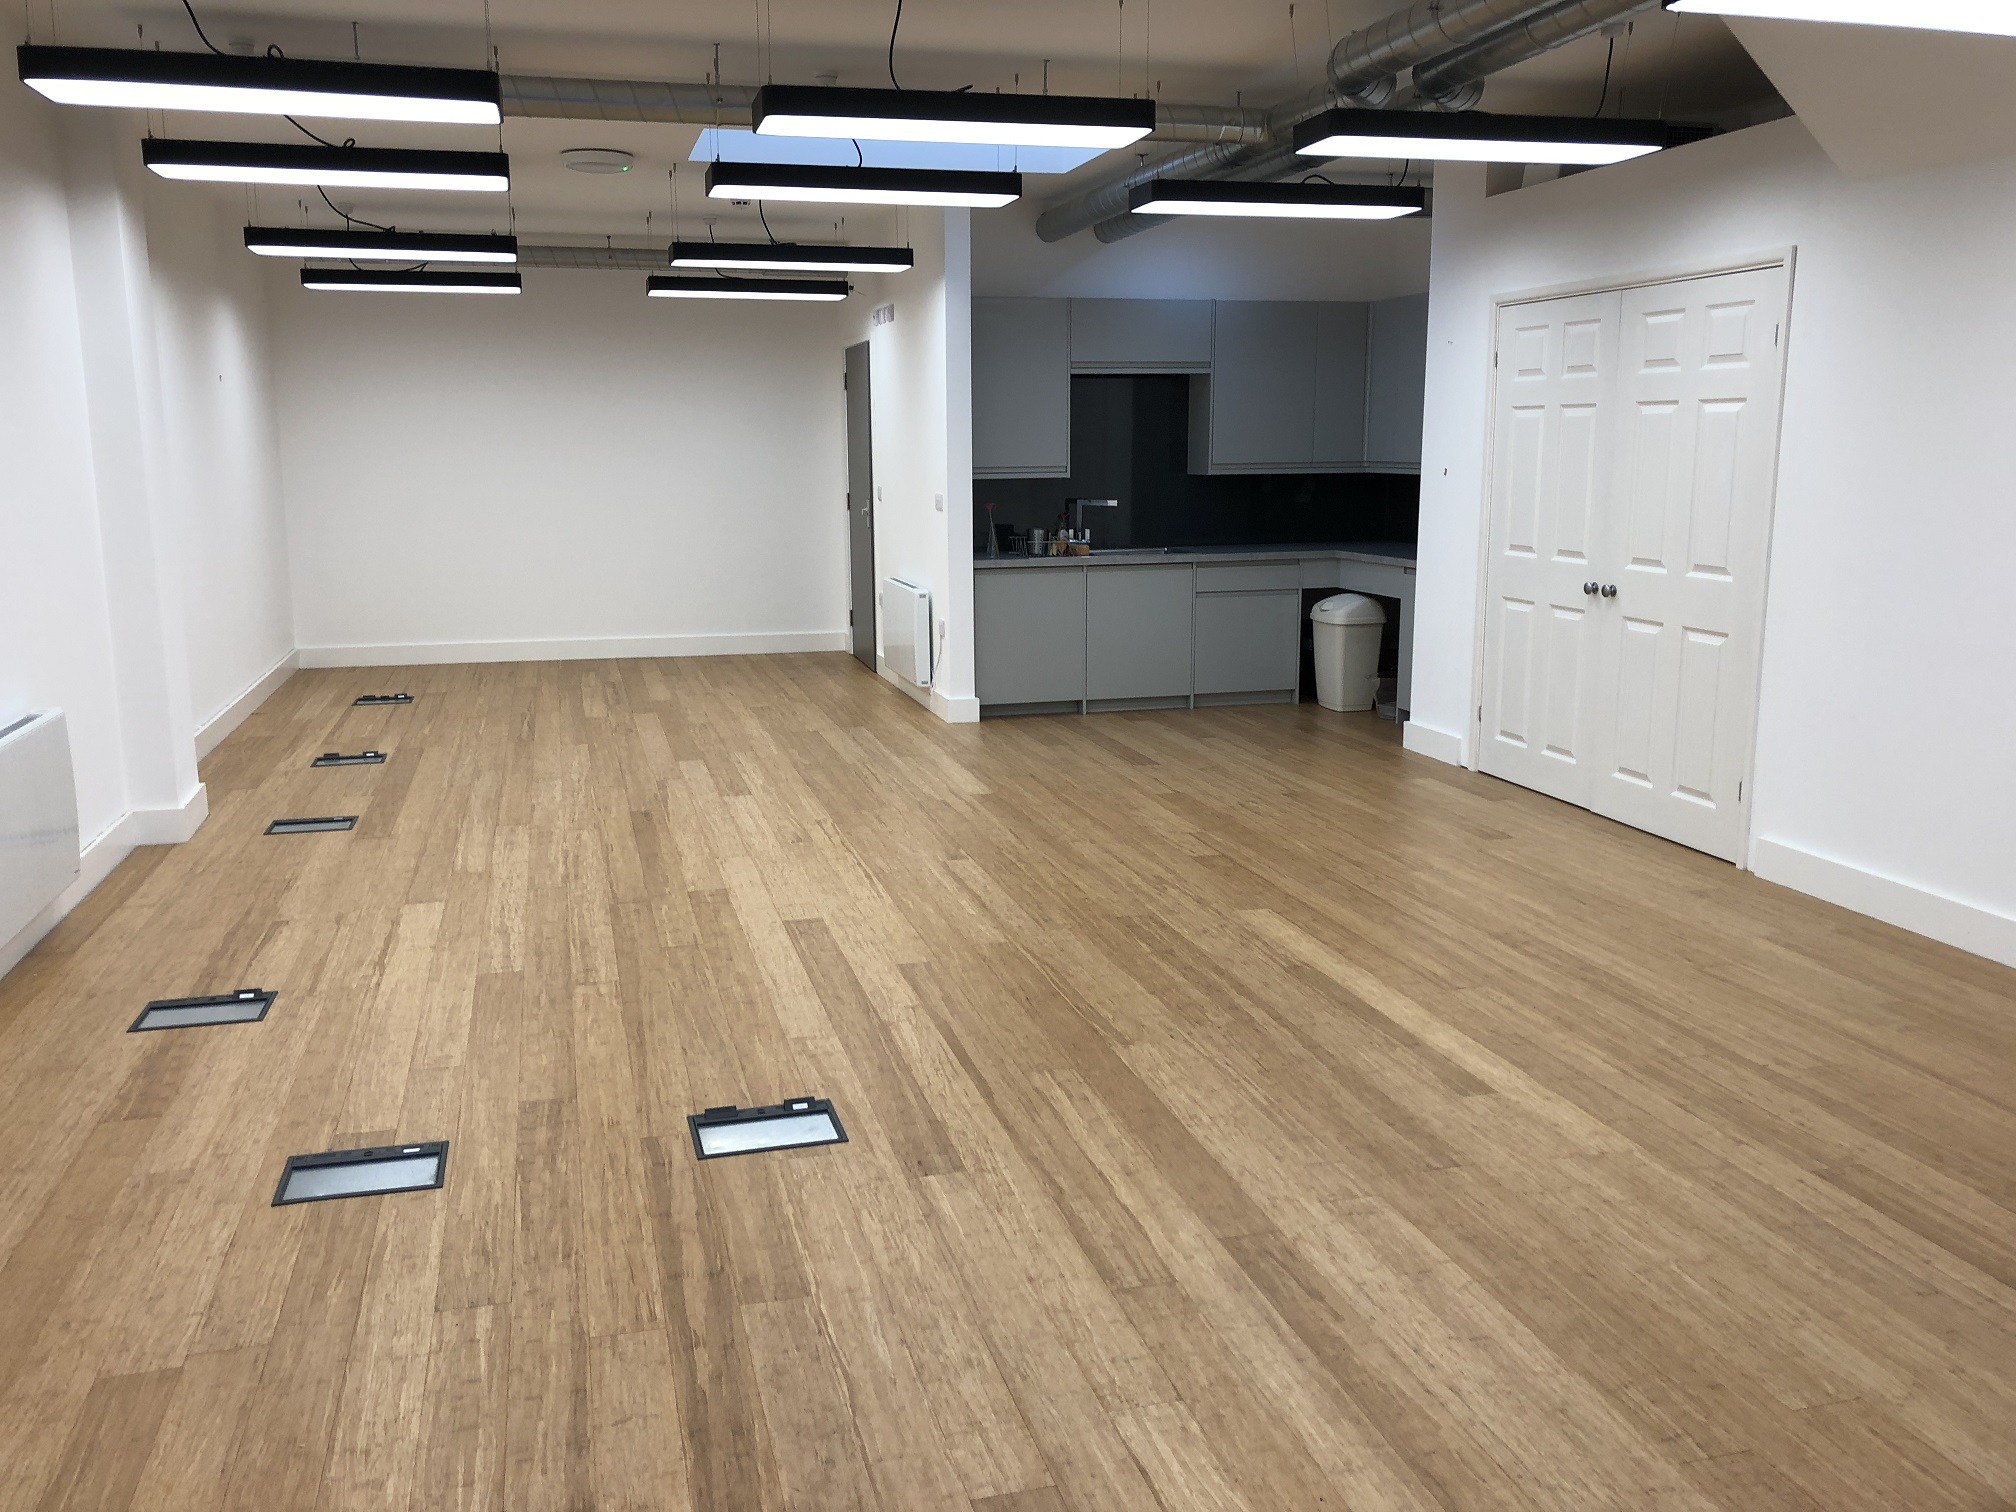 22 WEST HAMPSTEAD MEWS NW6. REFURBISHED SMALL OFFICE SUITE 650 SQ FT